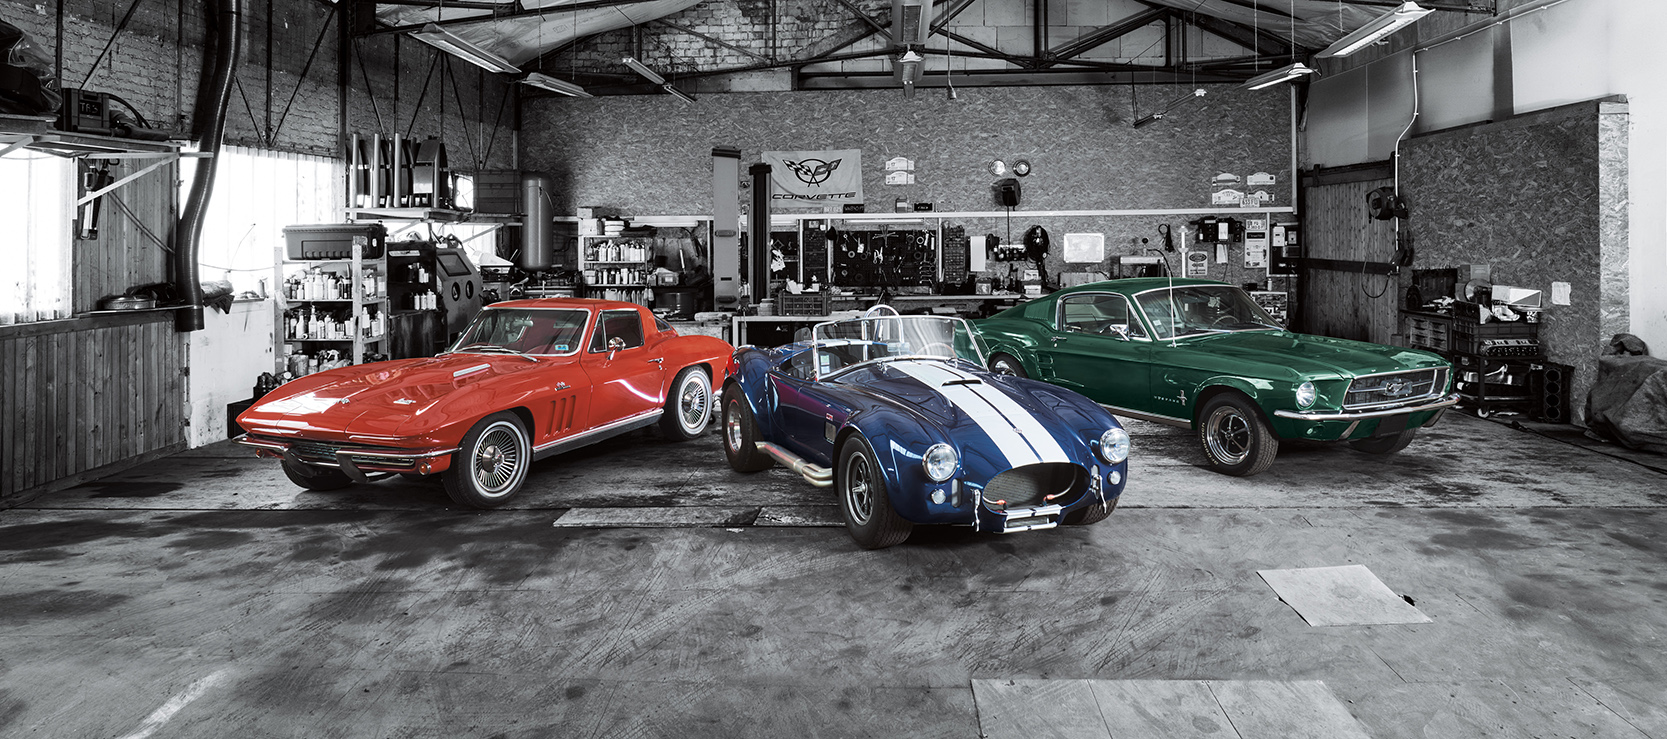 Top Time Classic Cars